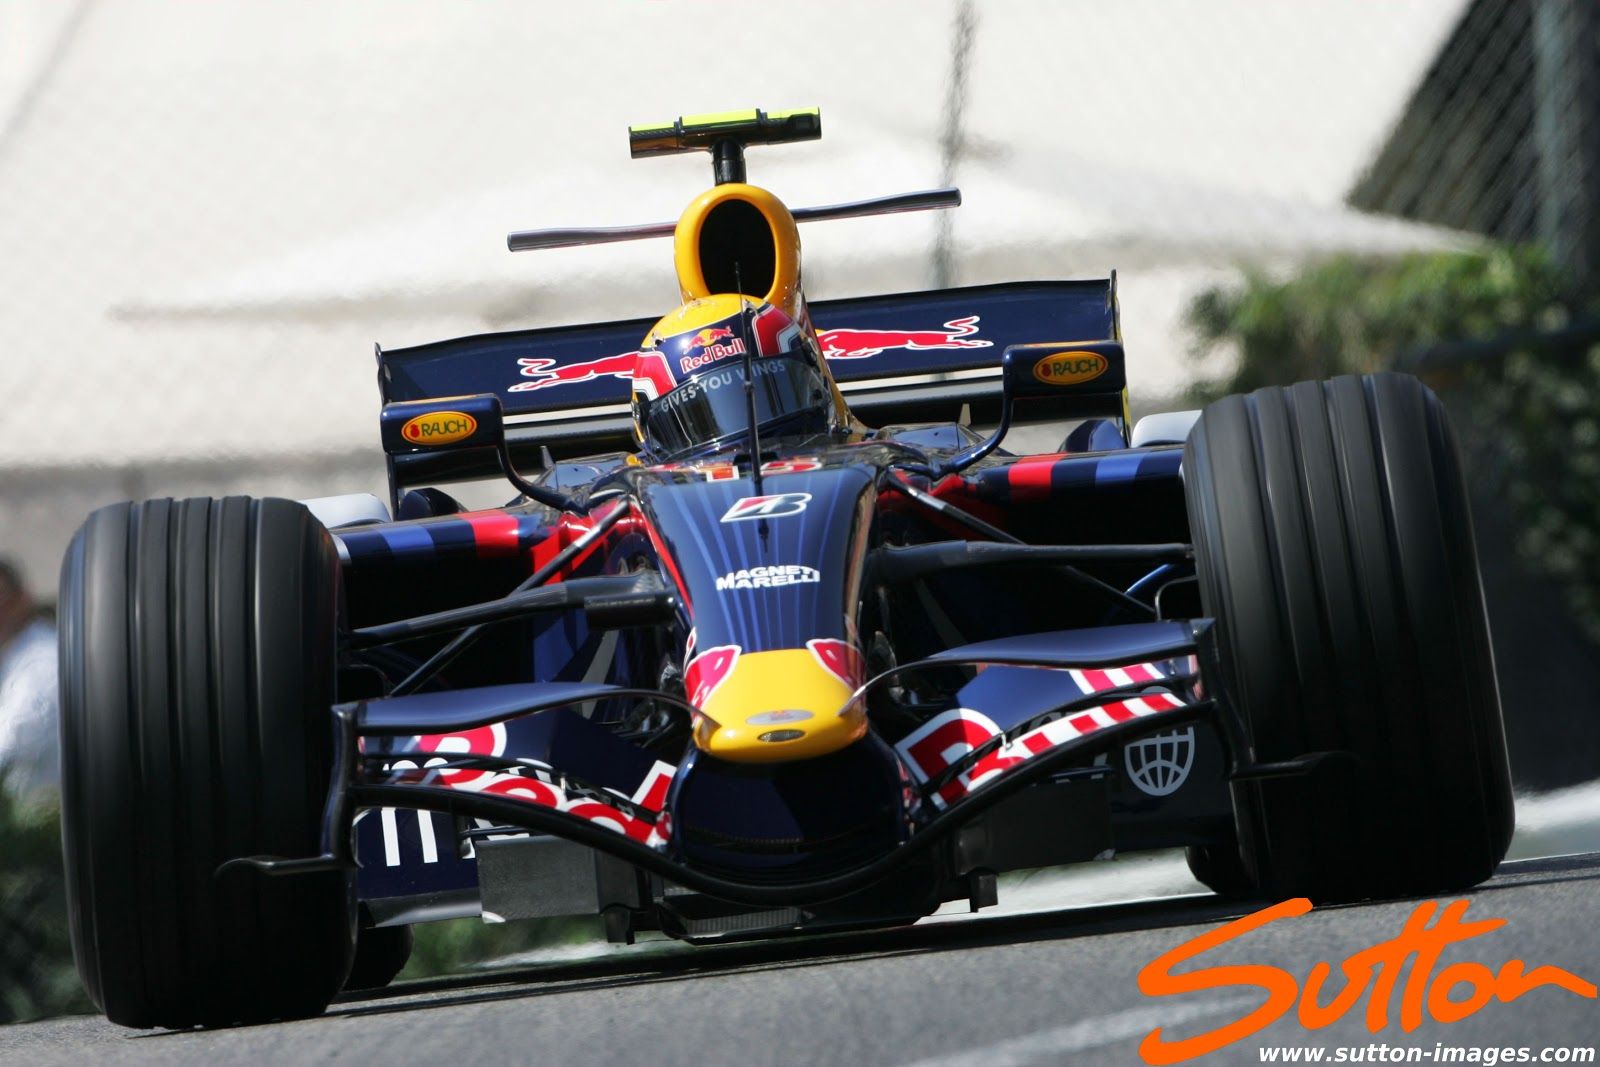 Red bull rb3 photo - 1